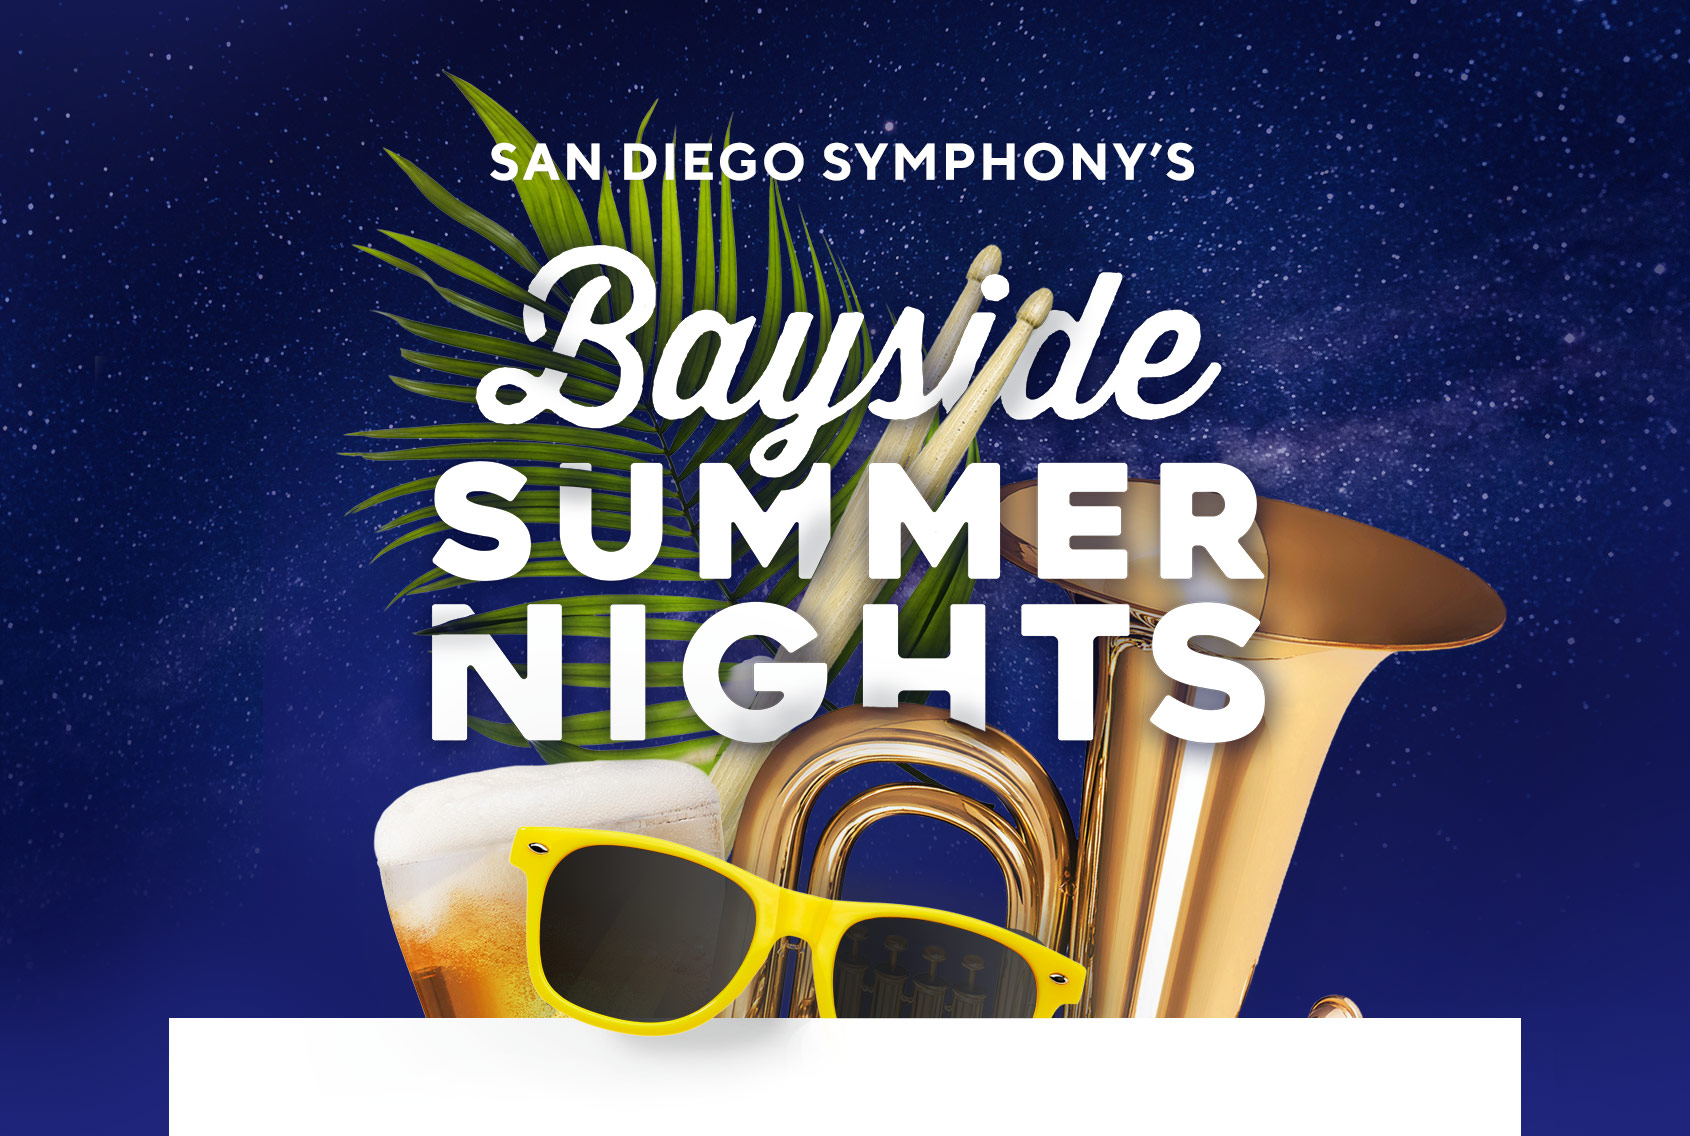 Bayside Summer Nights 2019 Single Tickets